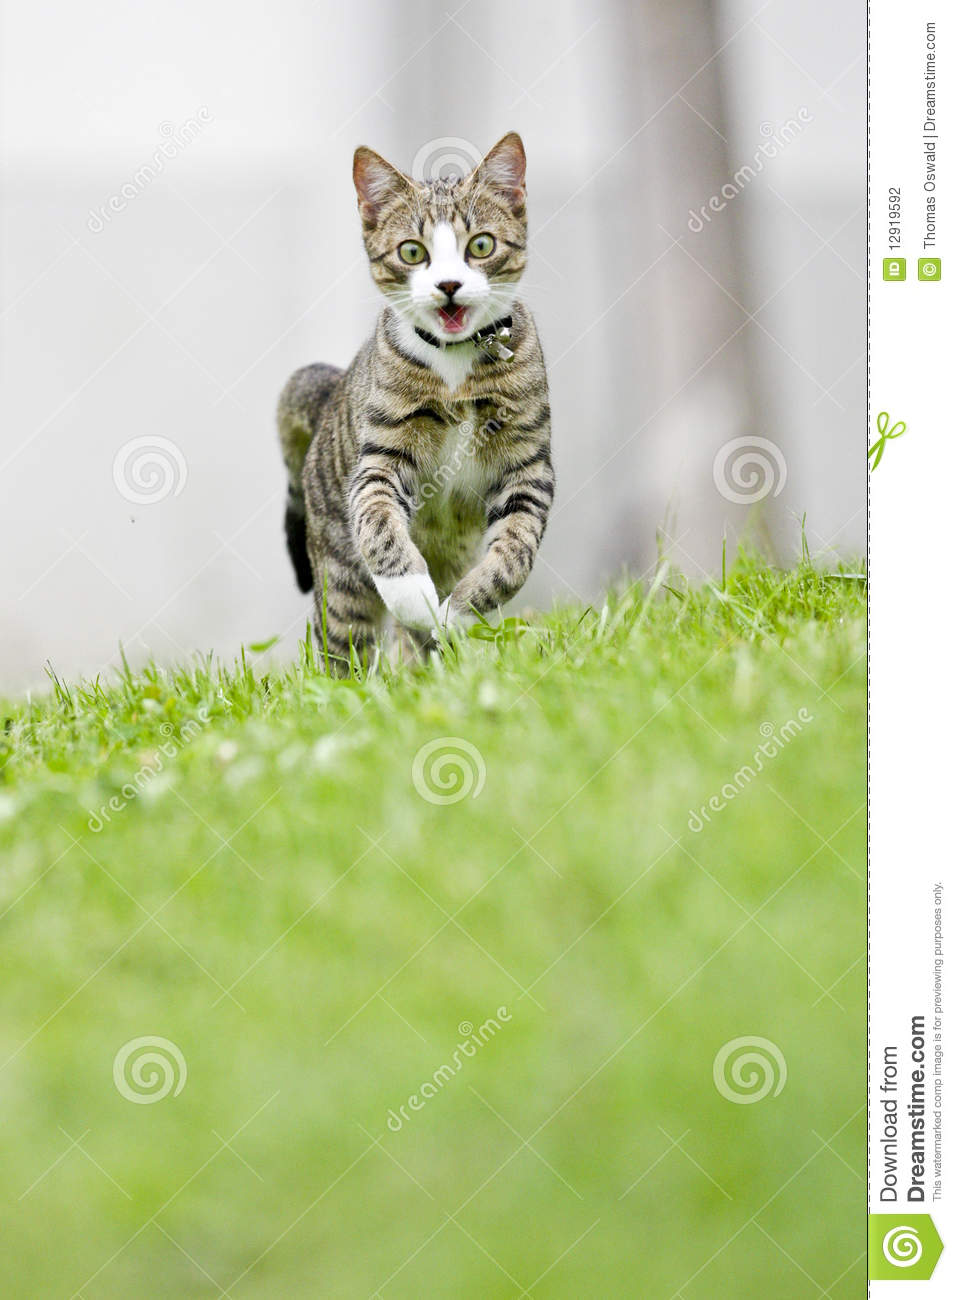 Running Cat Stock Photo Image Of Plant Head Outdoor